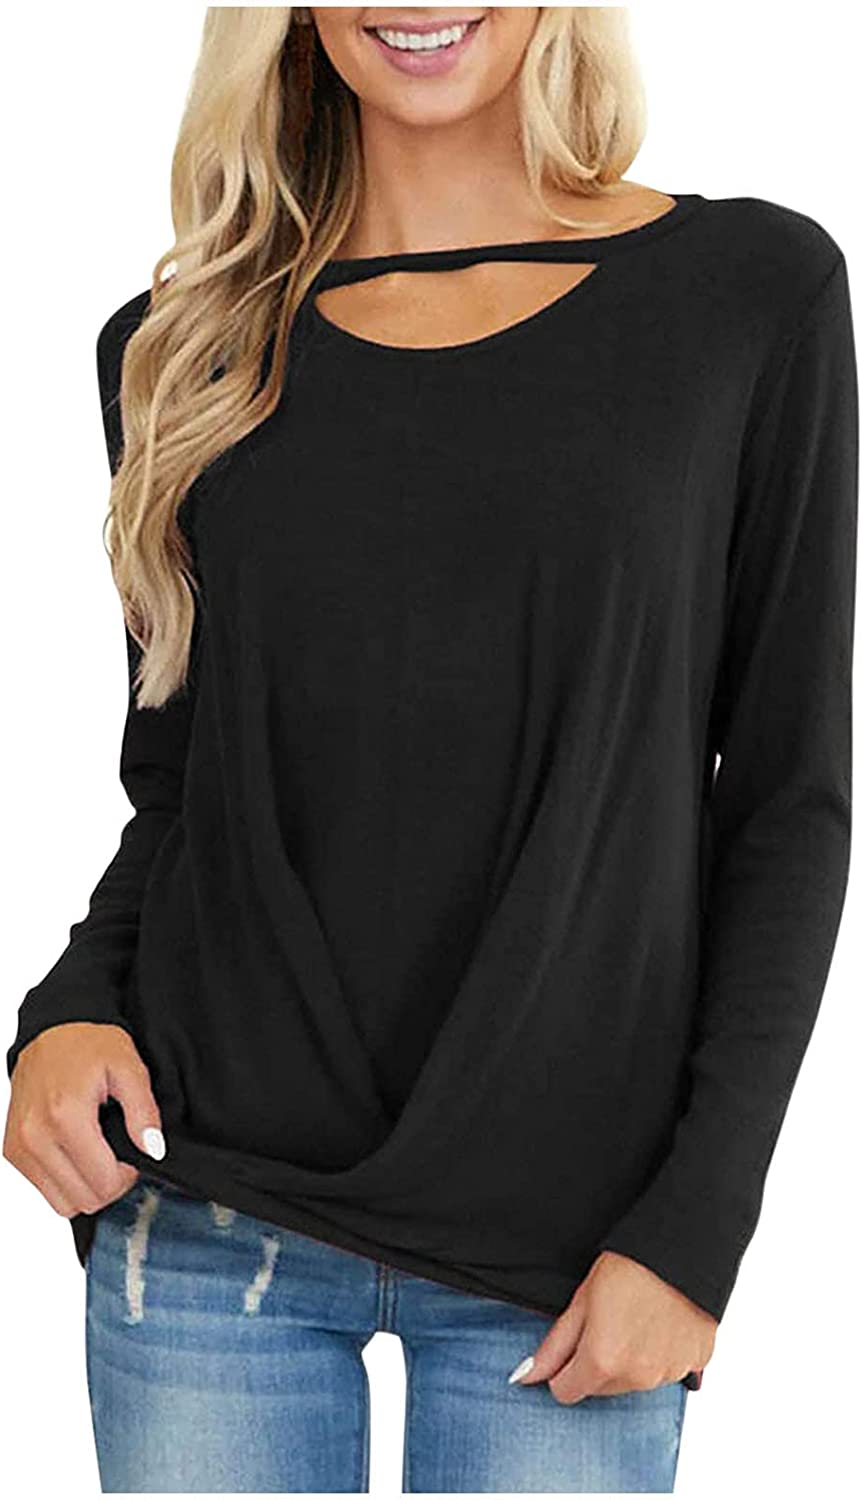 Women's Casual Shirts Long Sleeve O-Neck Solid Tunics Tops Loose Pullover Shirts Soft Street Tops Sweatshirts with Pocket